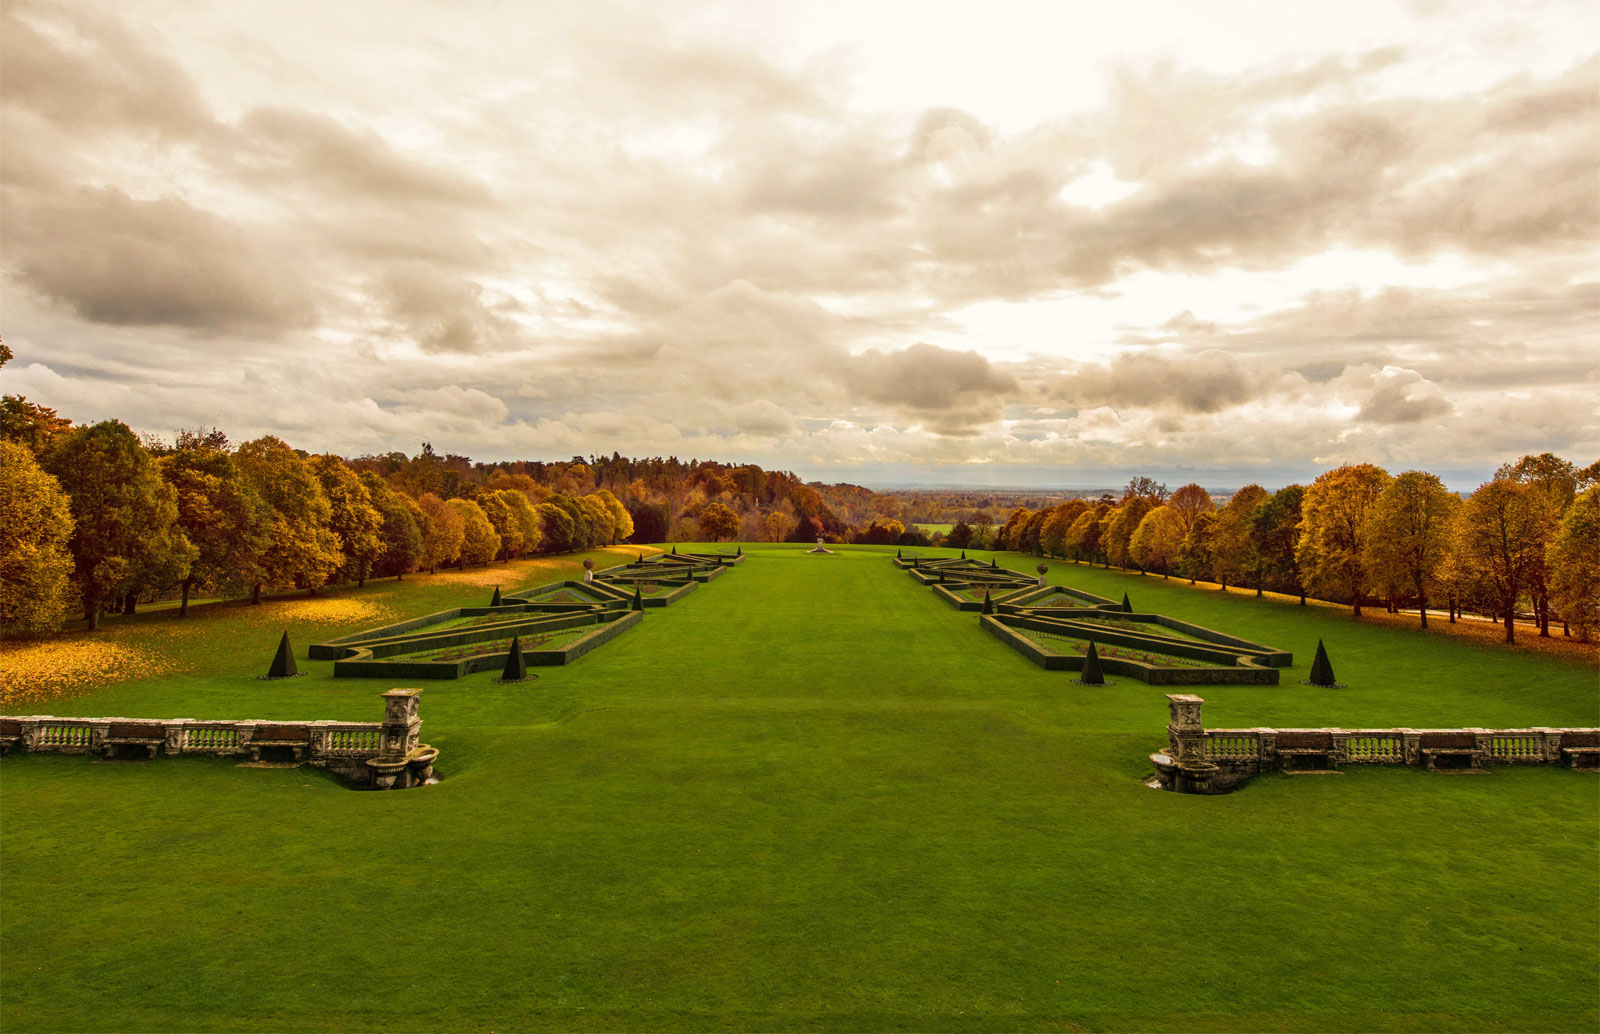 The spectacular grounds at Cliveden House